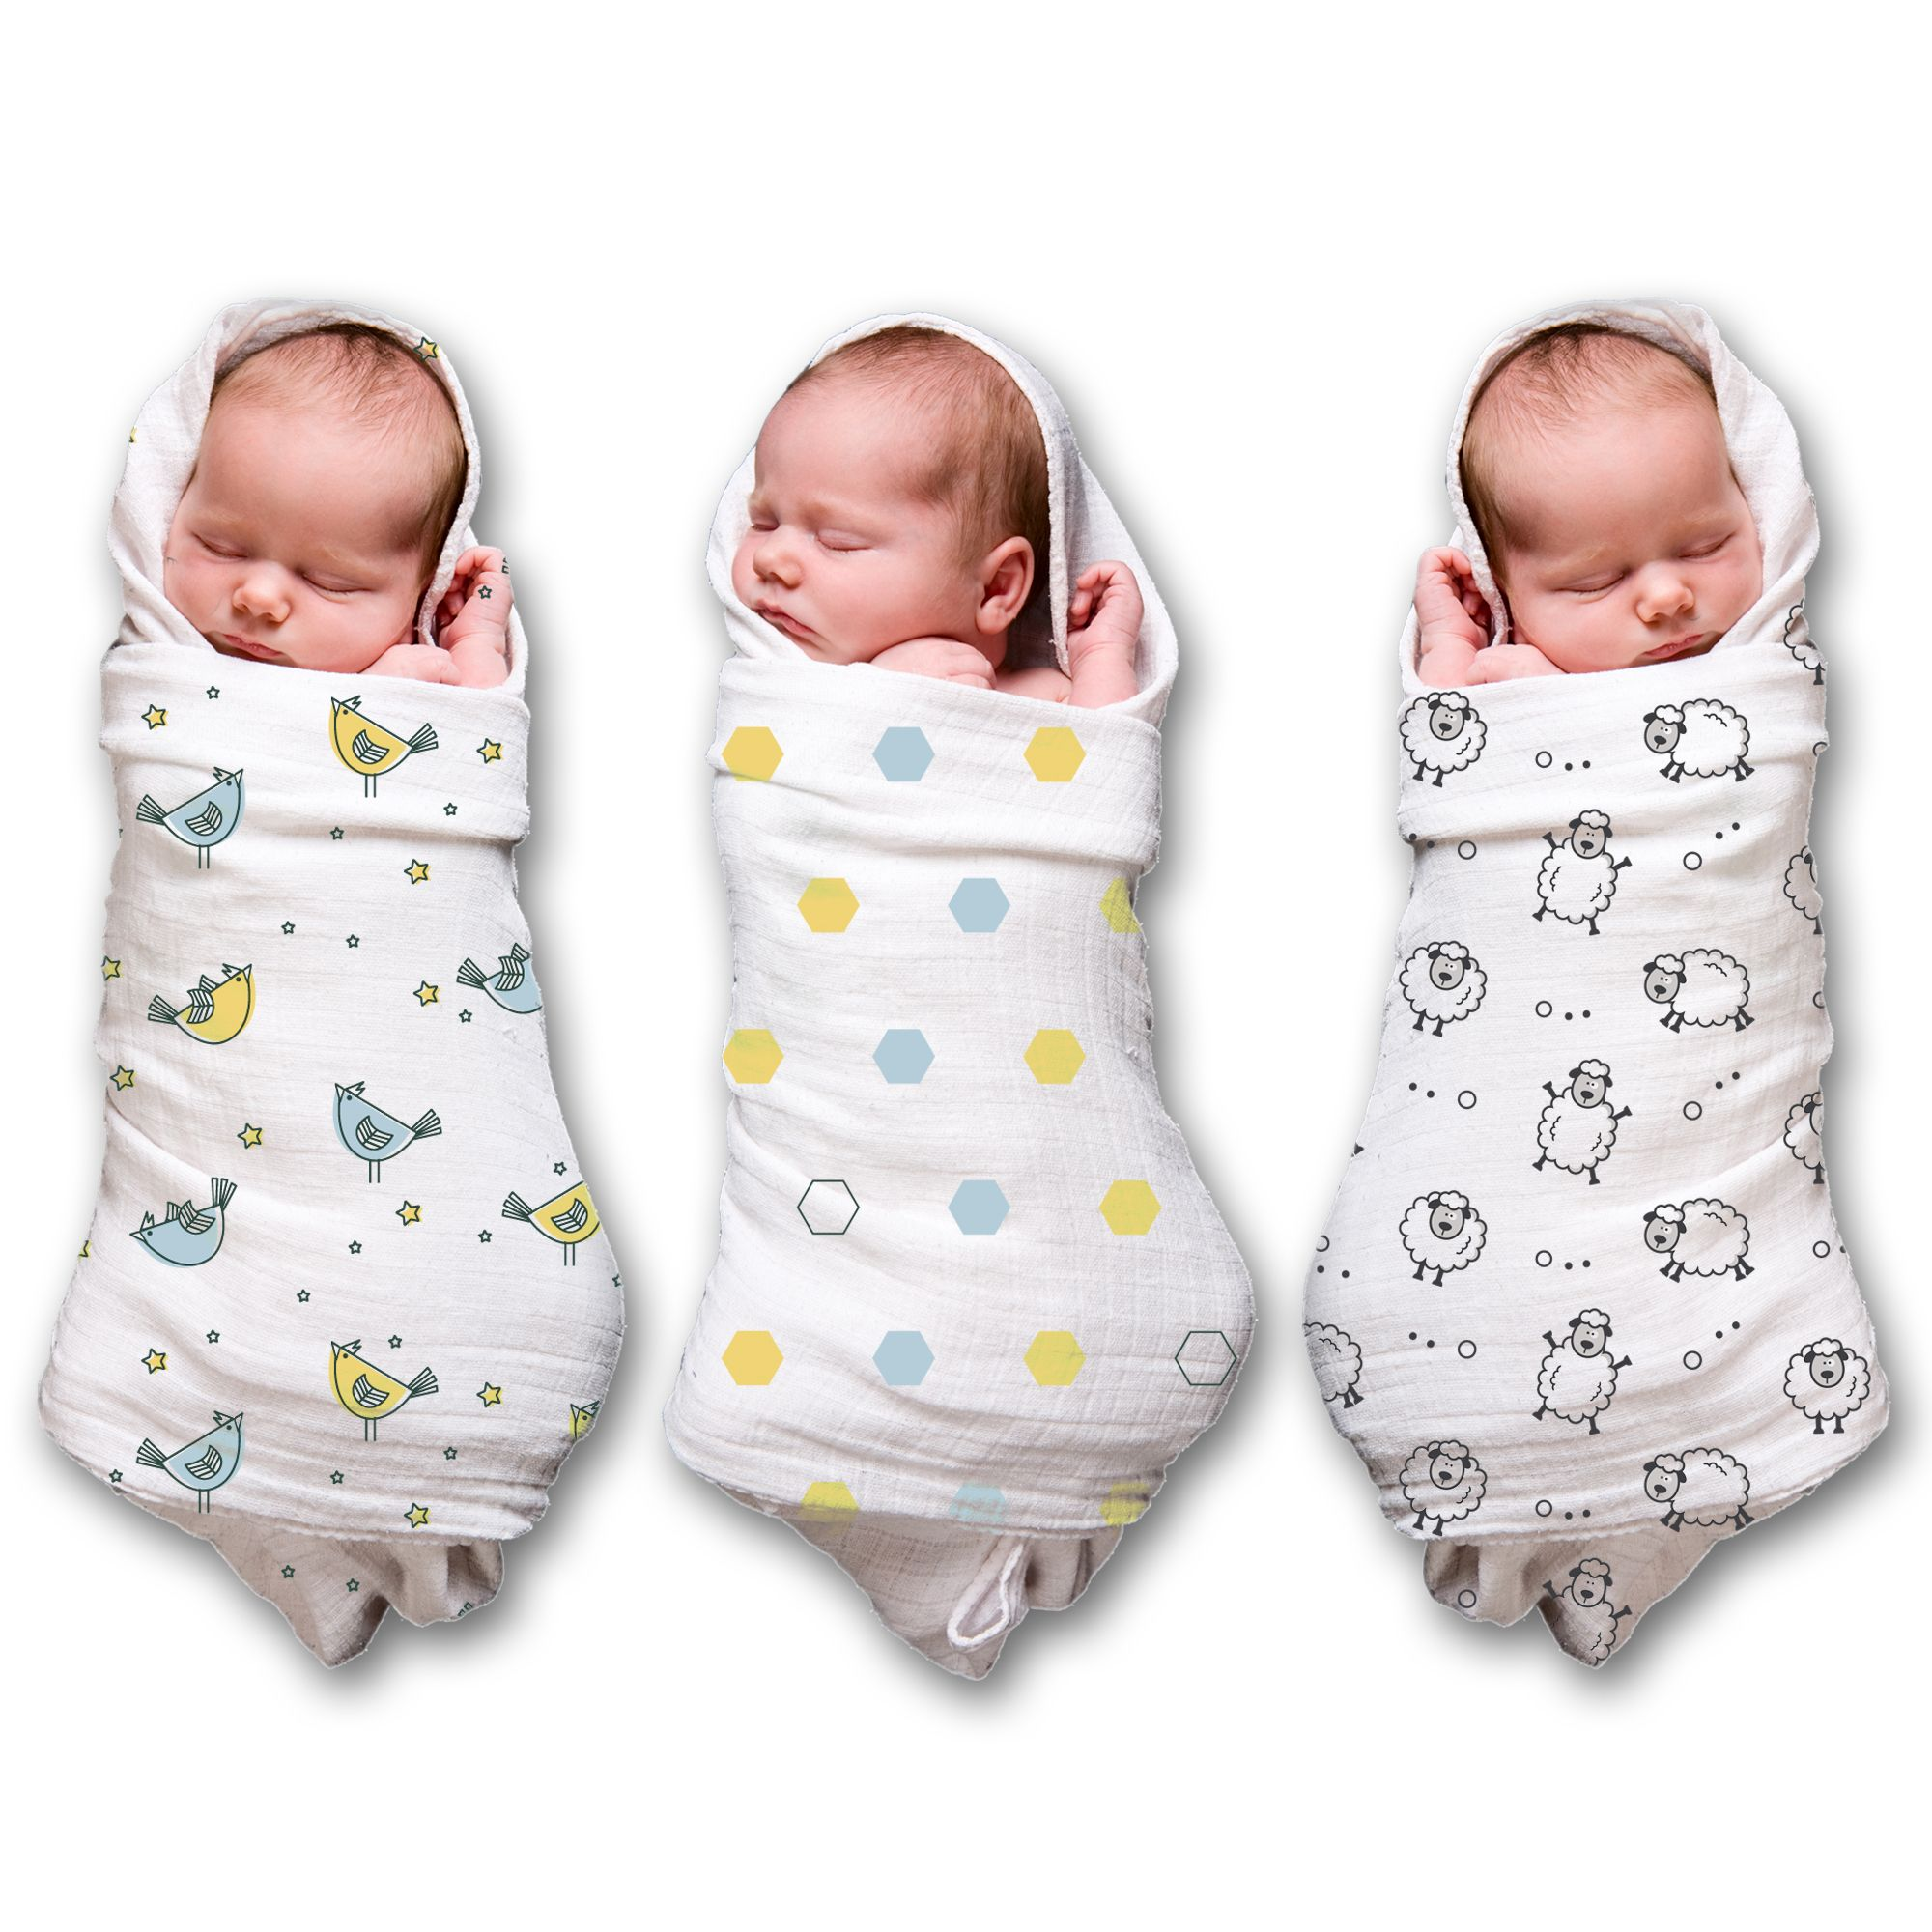 How To Swaddle A Baby With A Blanket Endearing Spranster Muslin Swaddle Blankets For A Baby Boy & Girl 3 Pack 100 Design Ideas